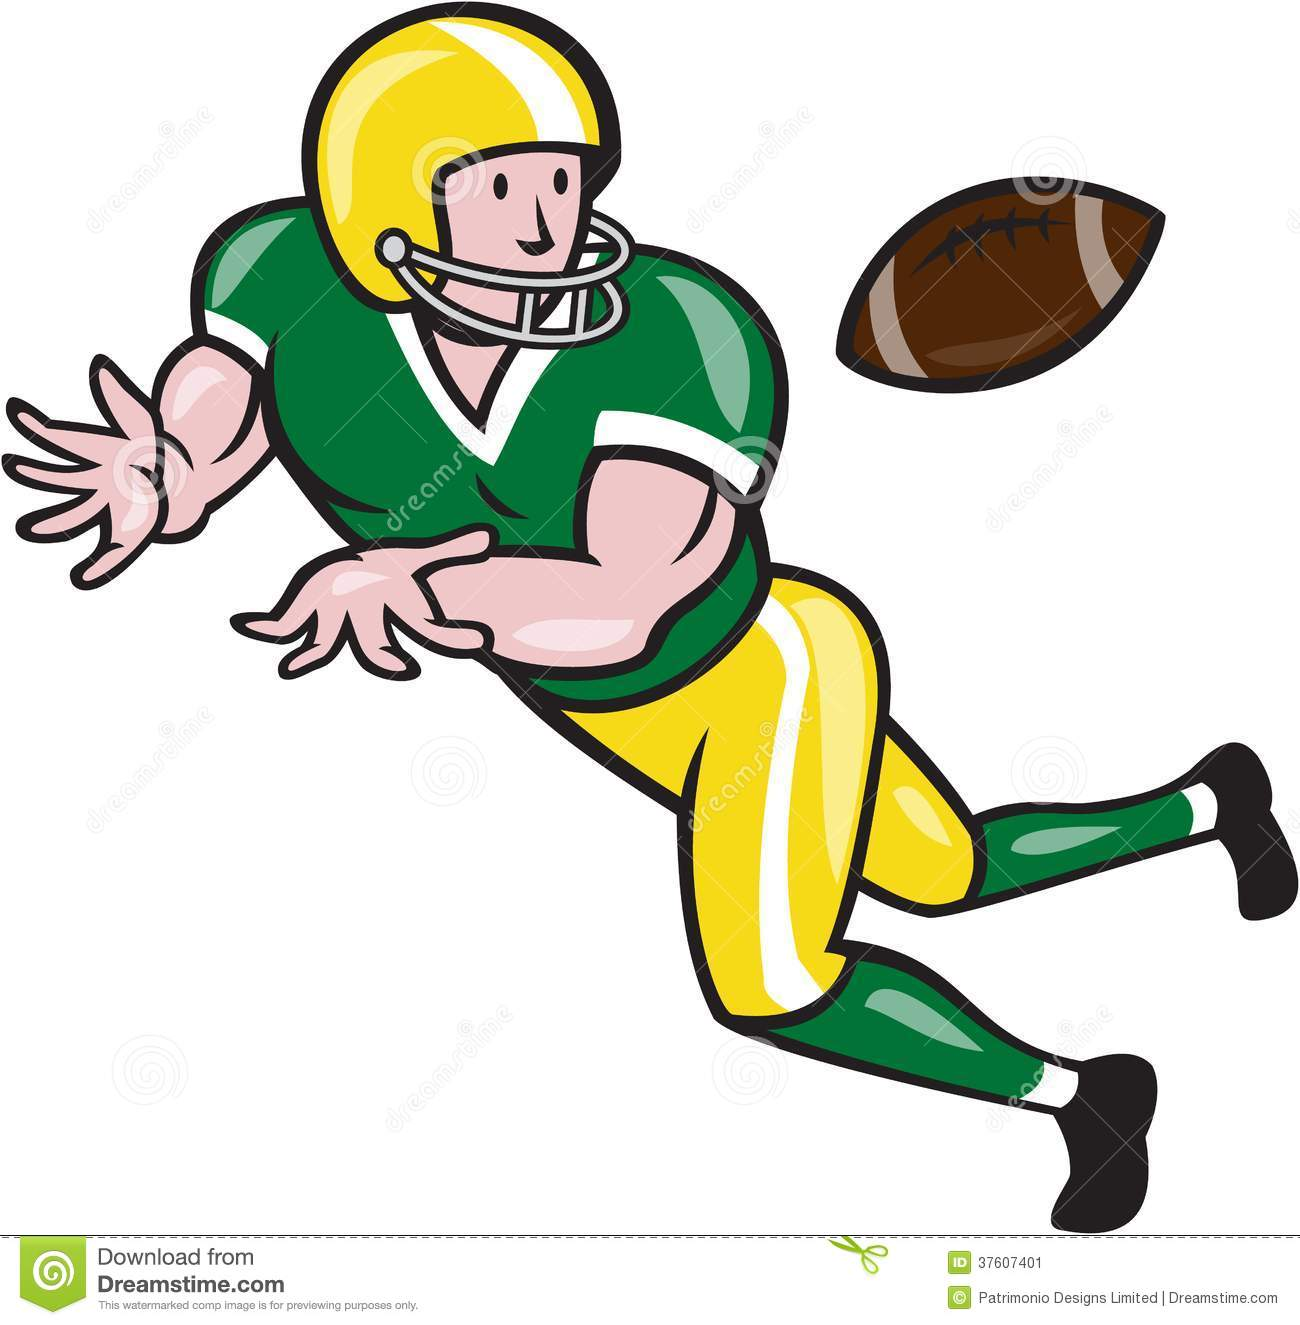 american-football-player-clipart-american-football-wide-receiver-catch    American Football Clipart